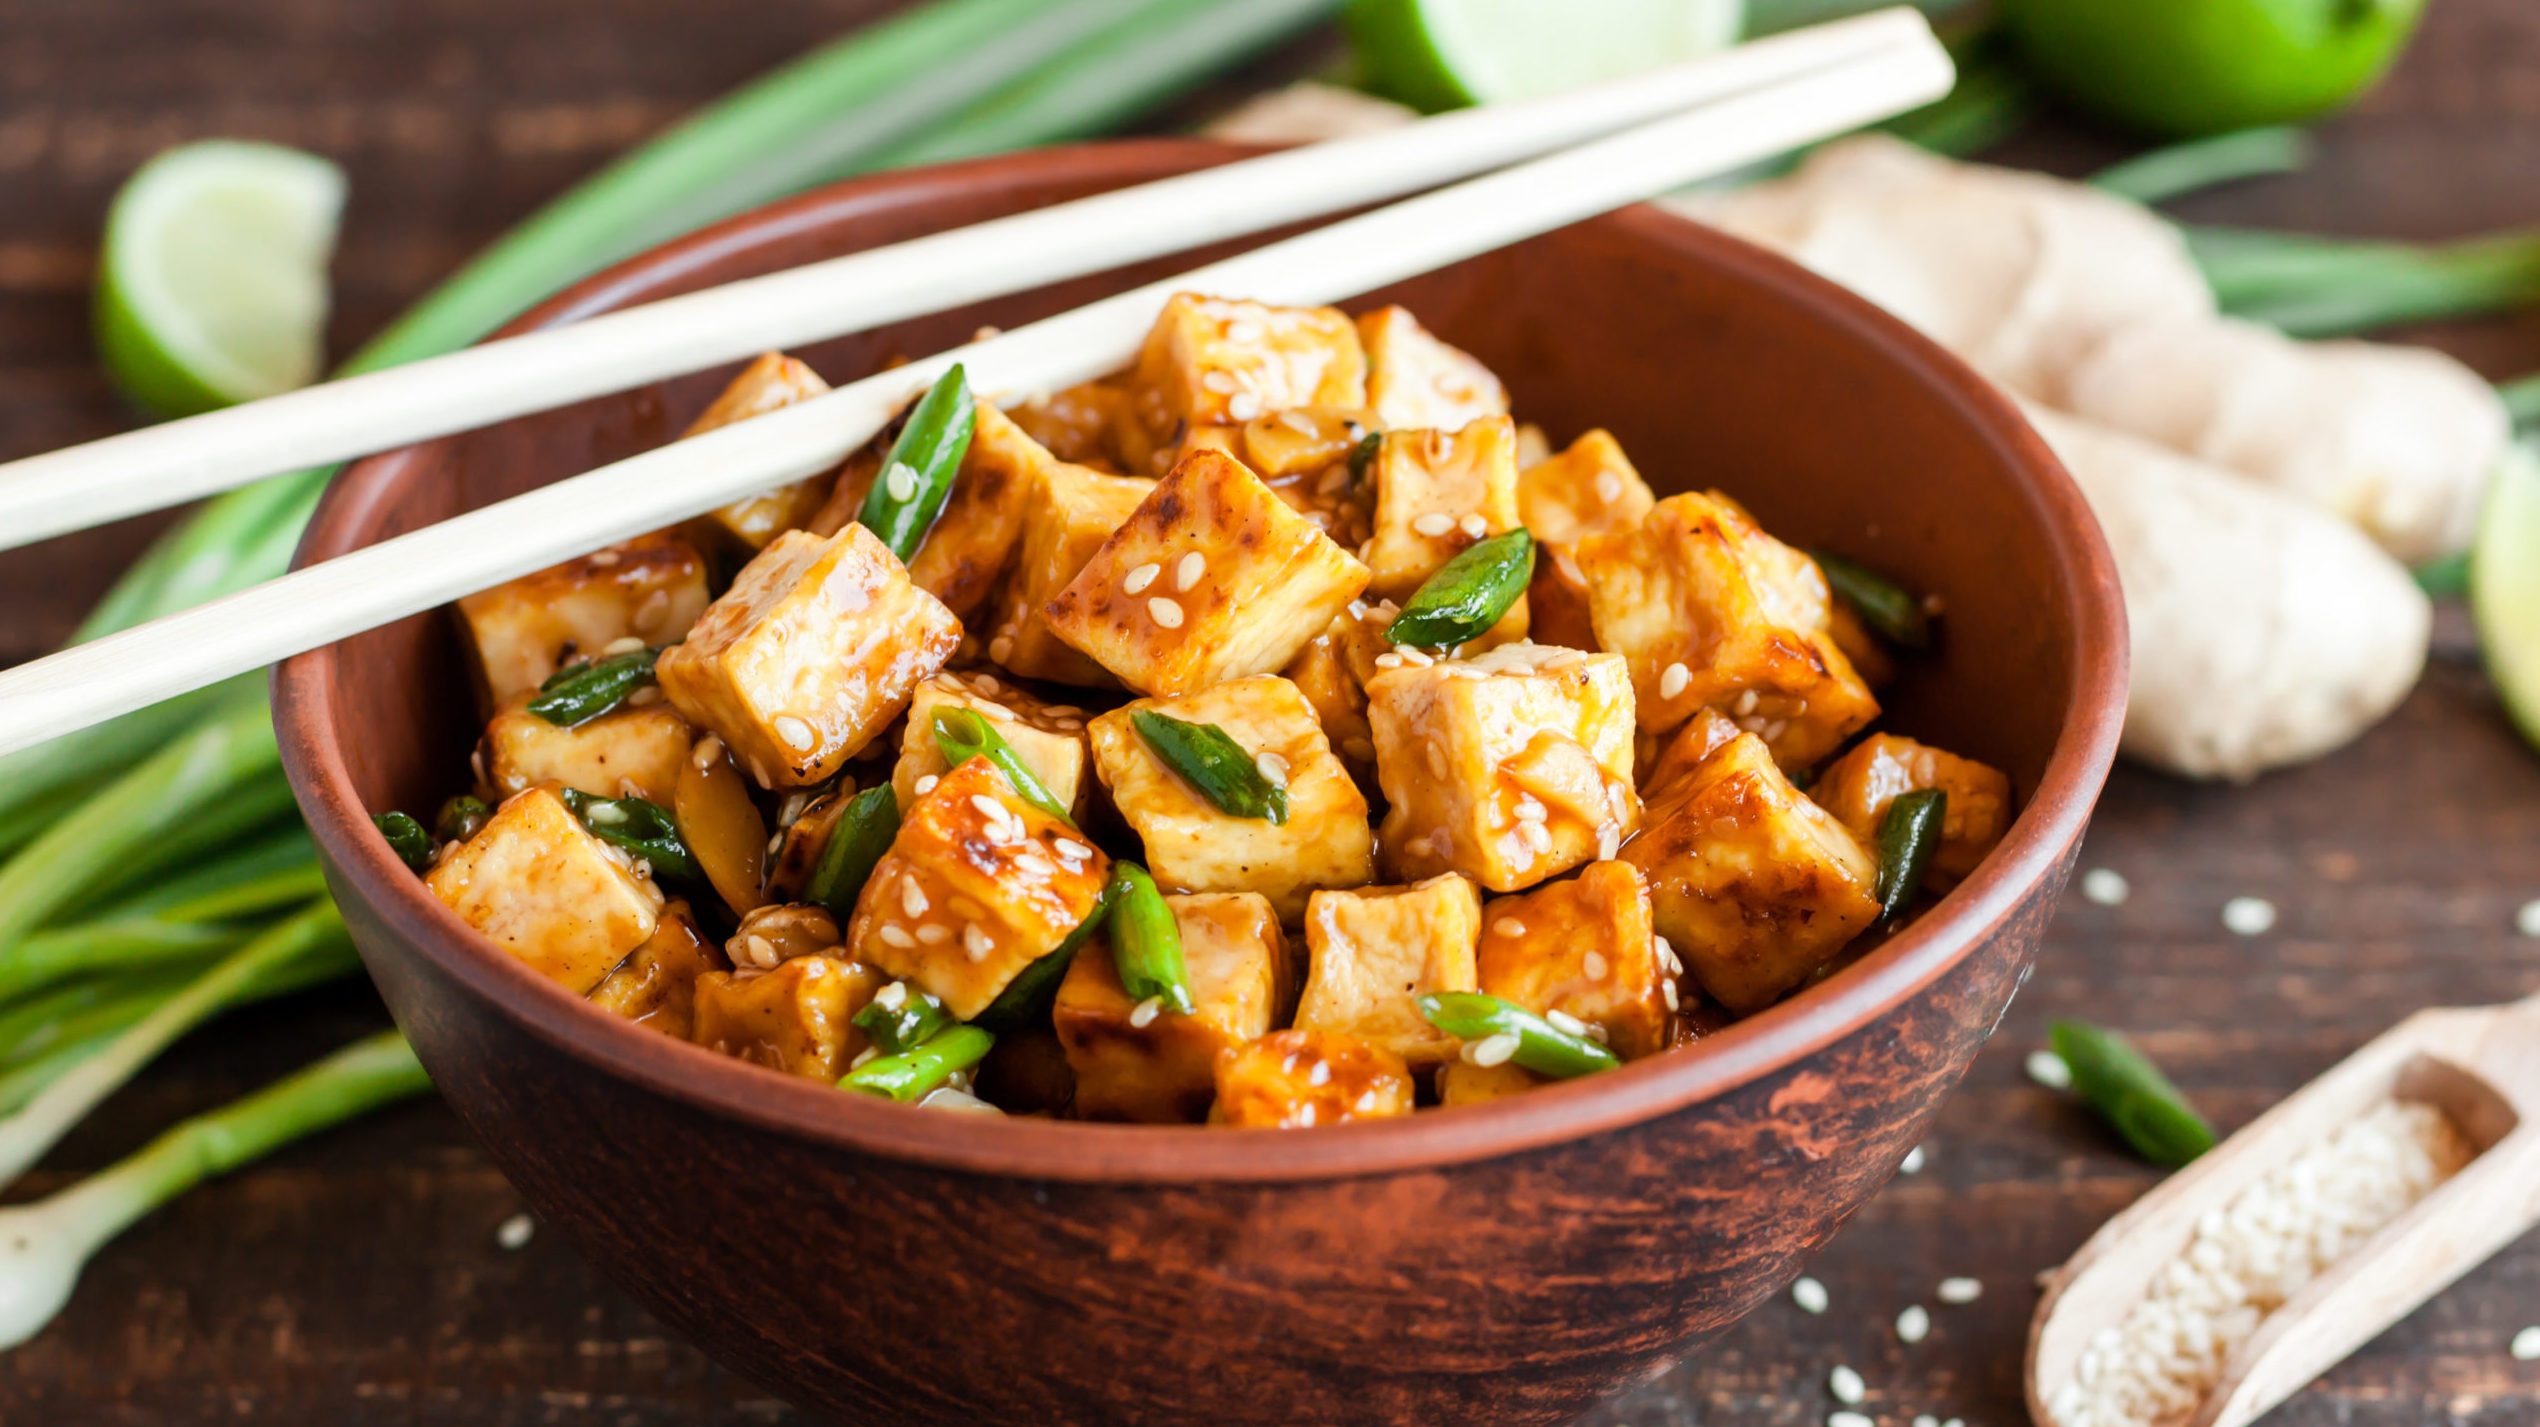 Image for Virtual Budget Cooking: Spicy Honey Garlic Tofu Bowls